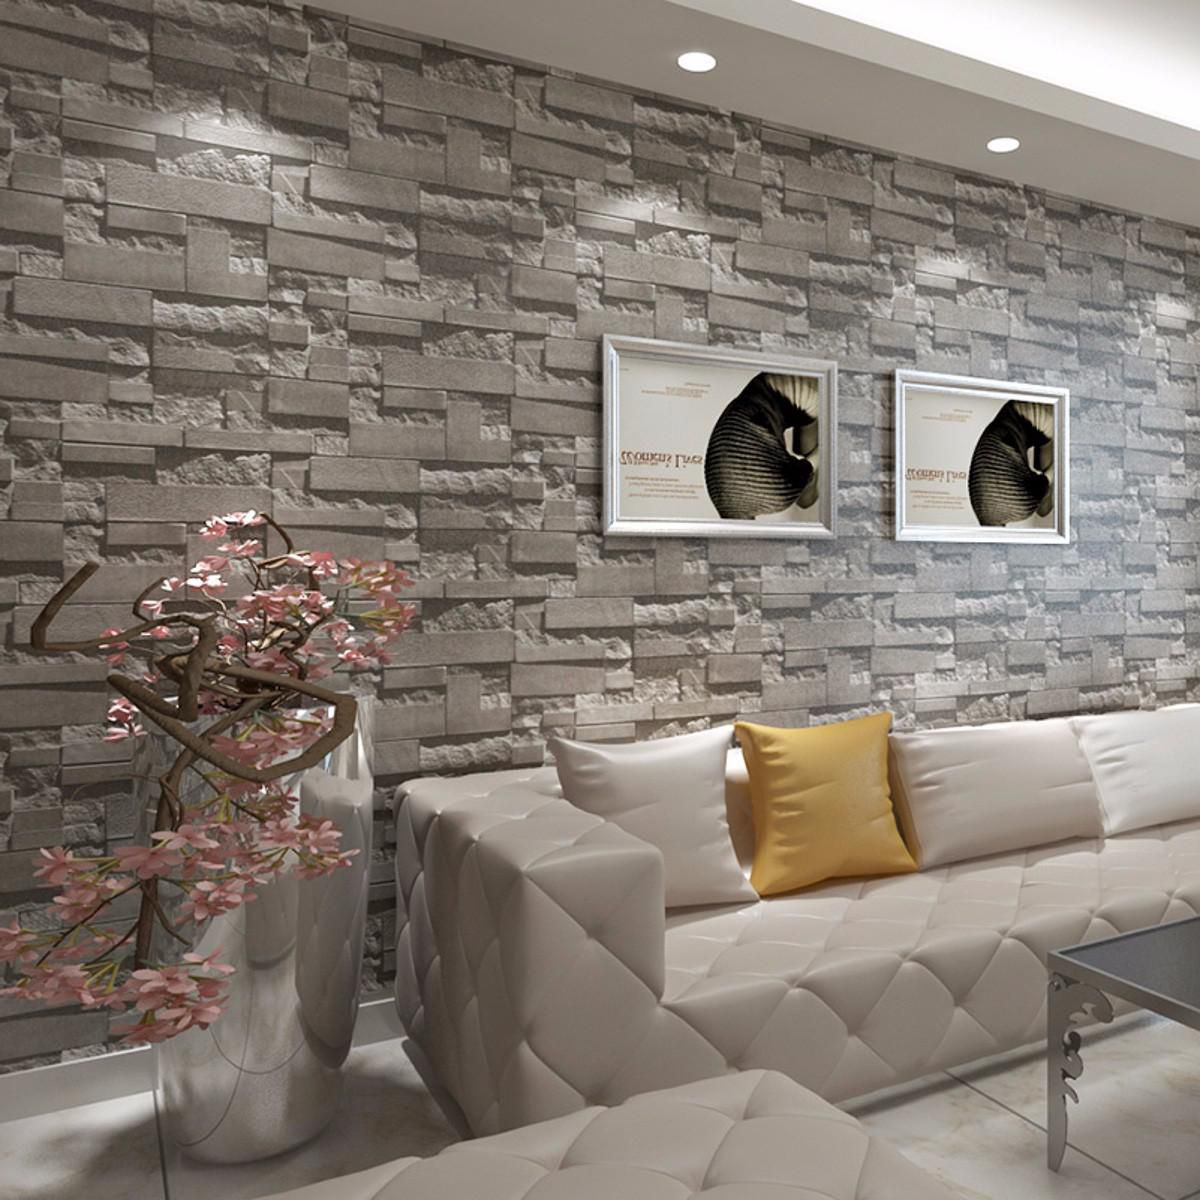 3d Brick Wallpaper Wall Paper Bedroom Living Room Background Mural Tv Decor 10m Buy 3d Brick Wallpaper Wall Paper Bedroom Living Room Background Mural Tv Decor 10m At Best Price In India